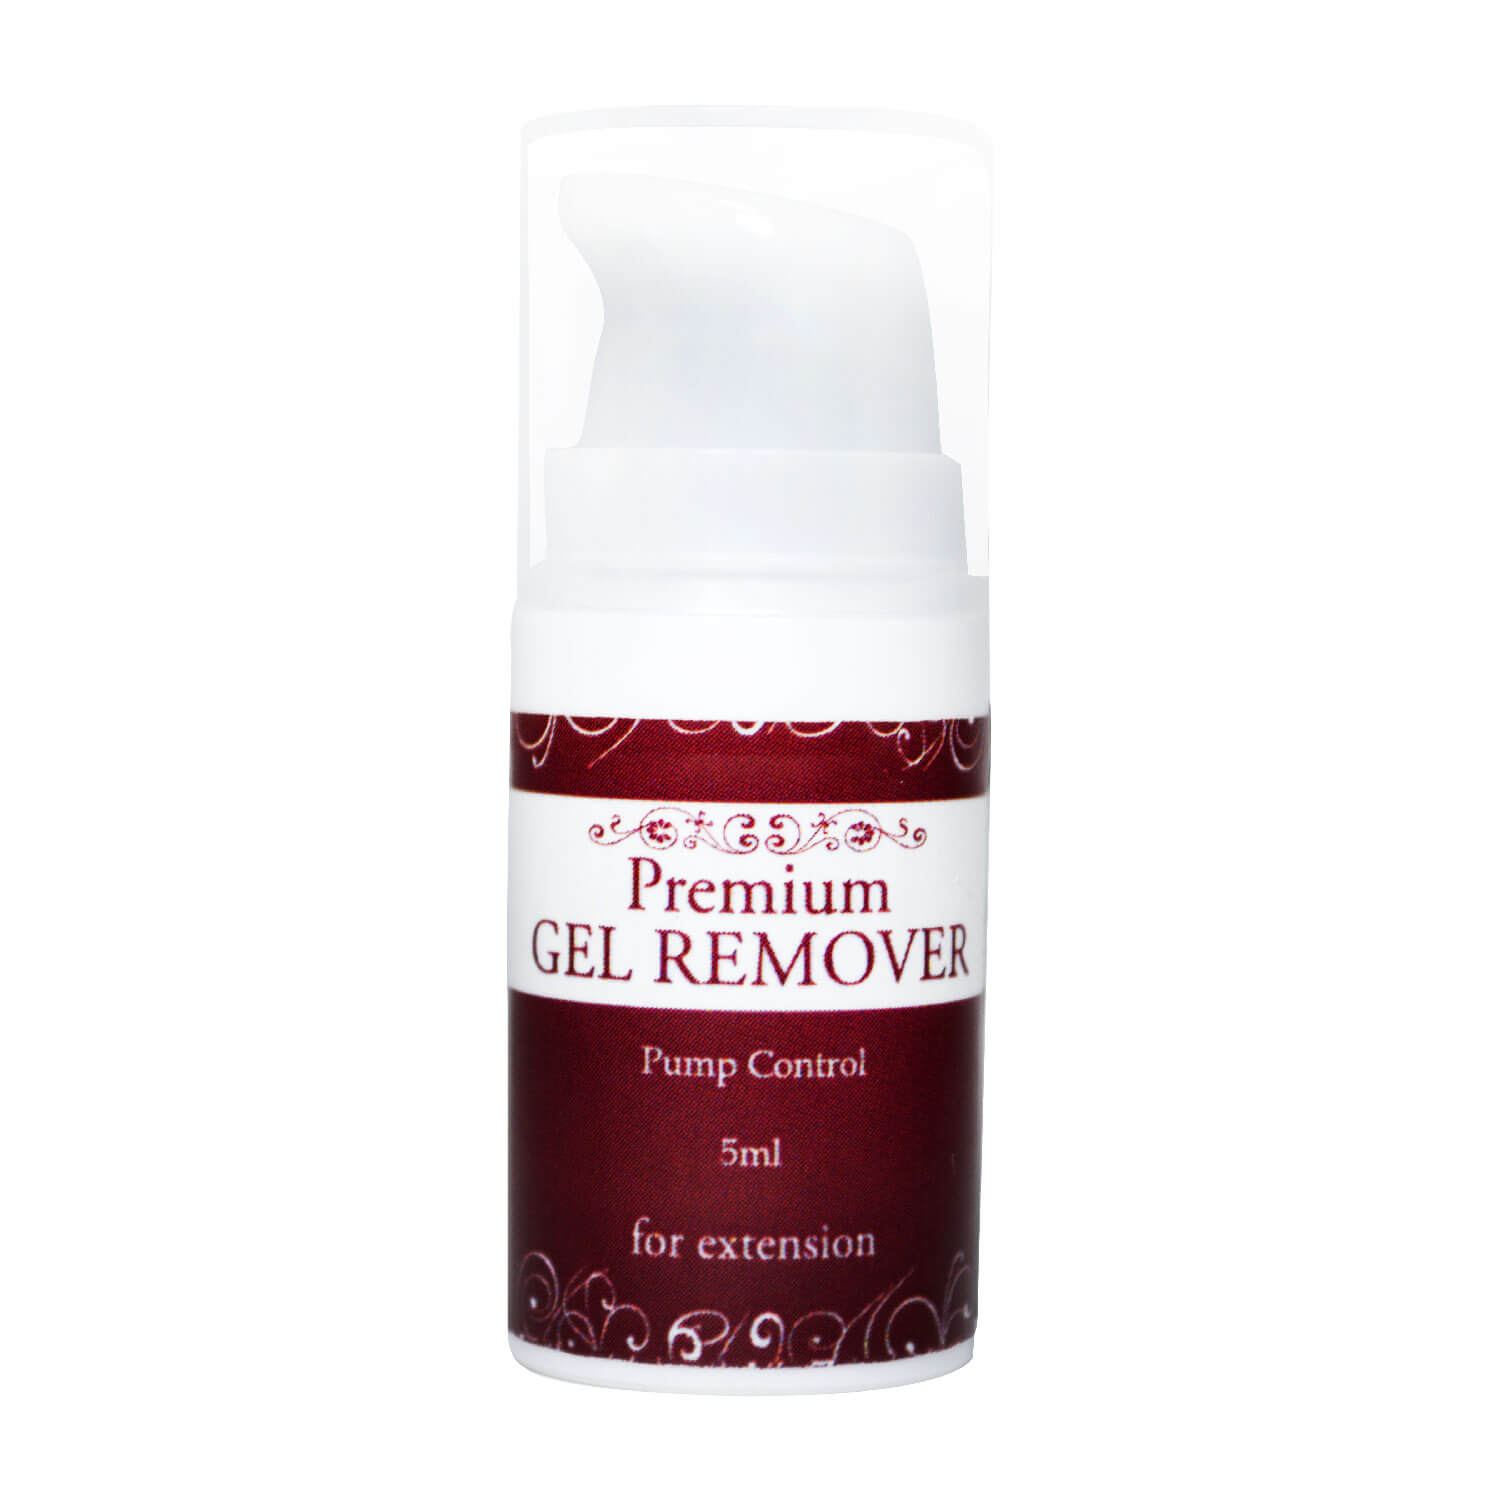 Removedor Gel Premium Pump Control 5ml